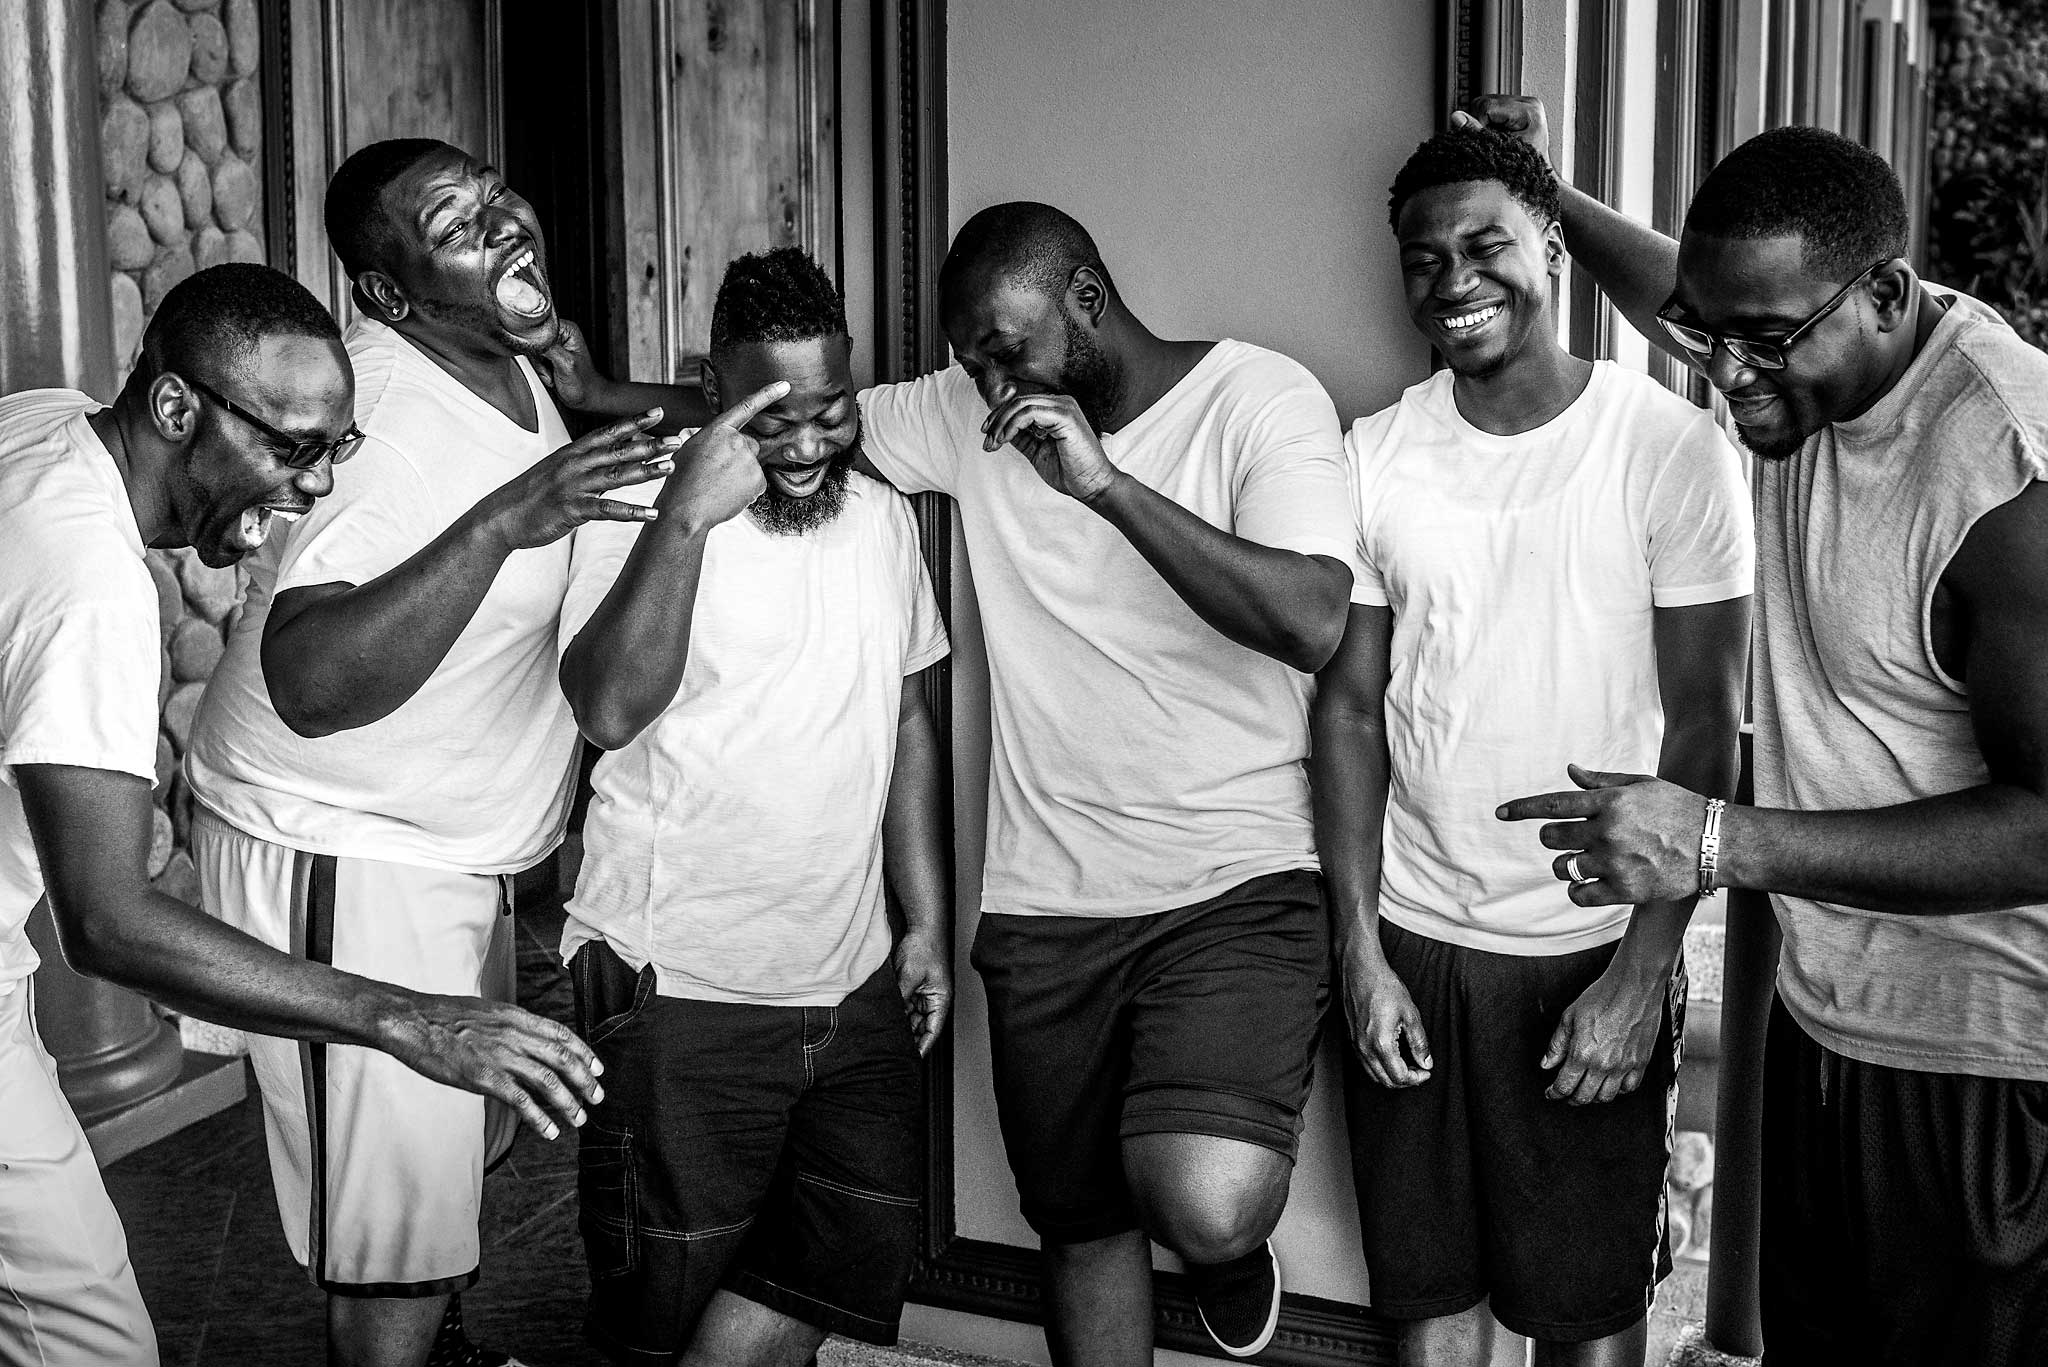 groomsmen joking around before a wedding day by Costa Rica wedding photographers